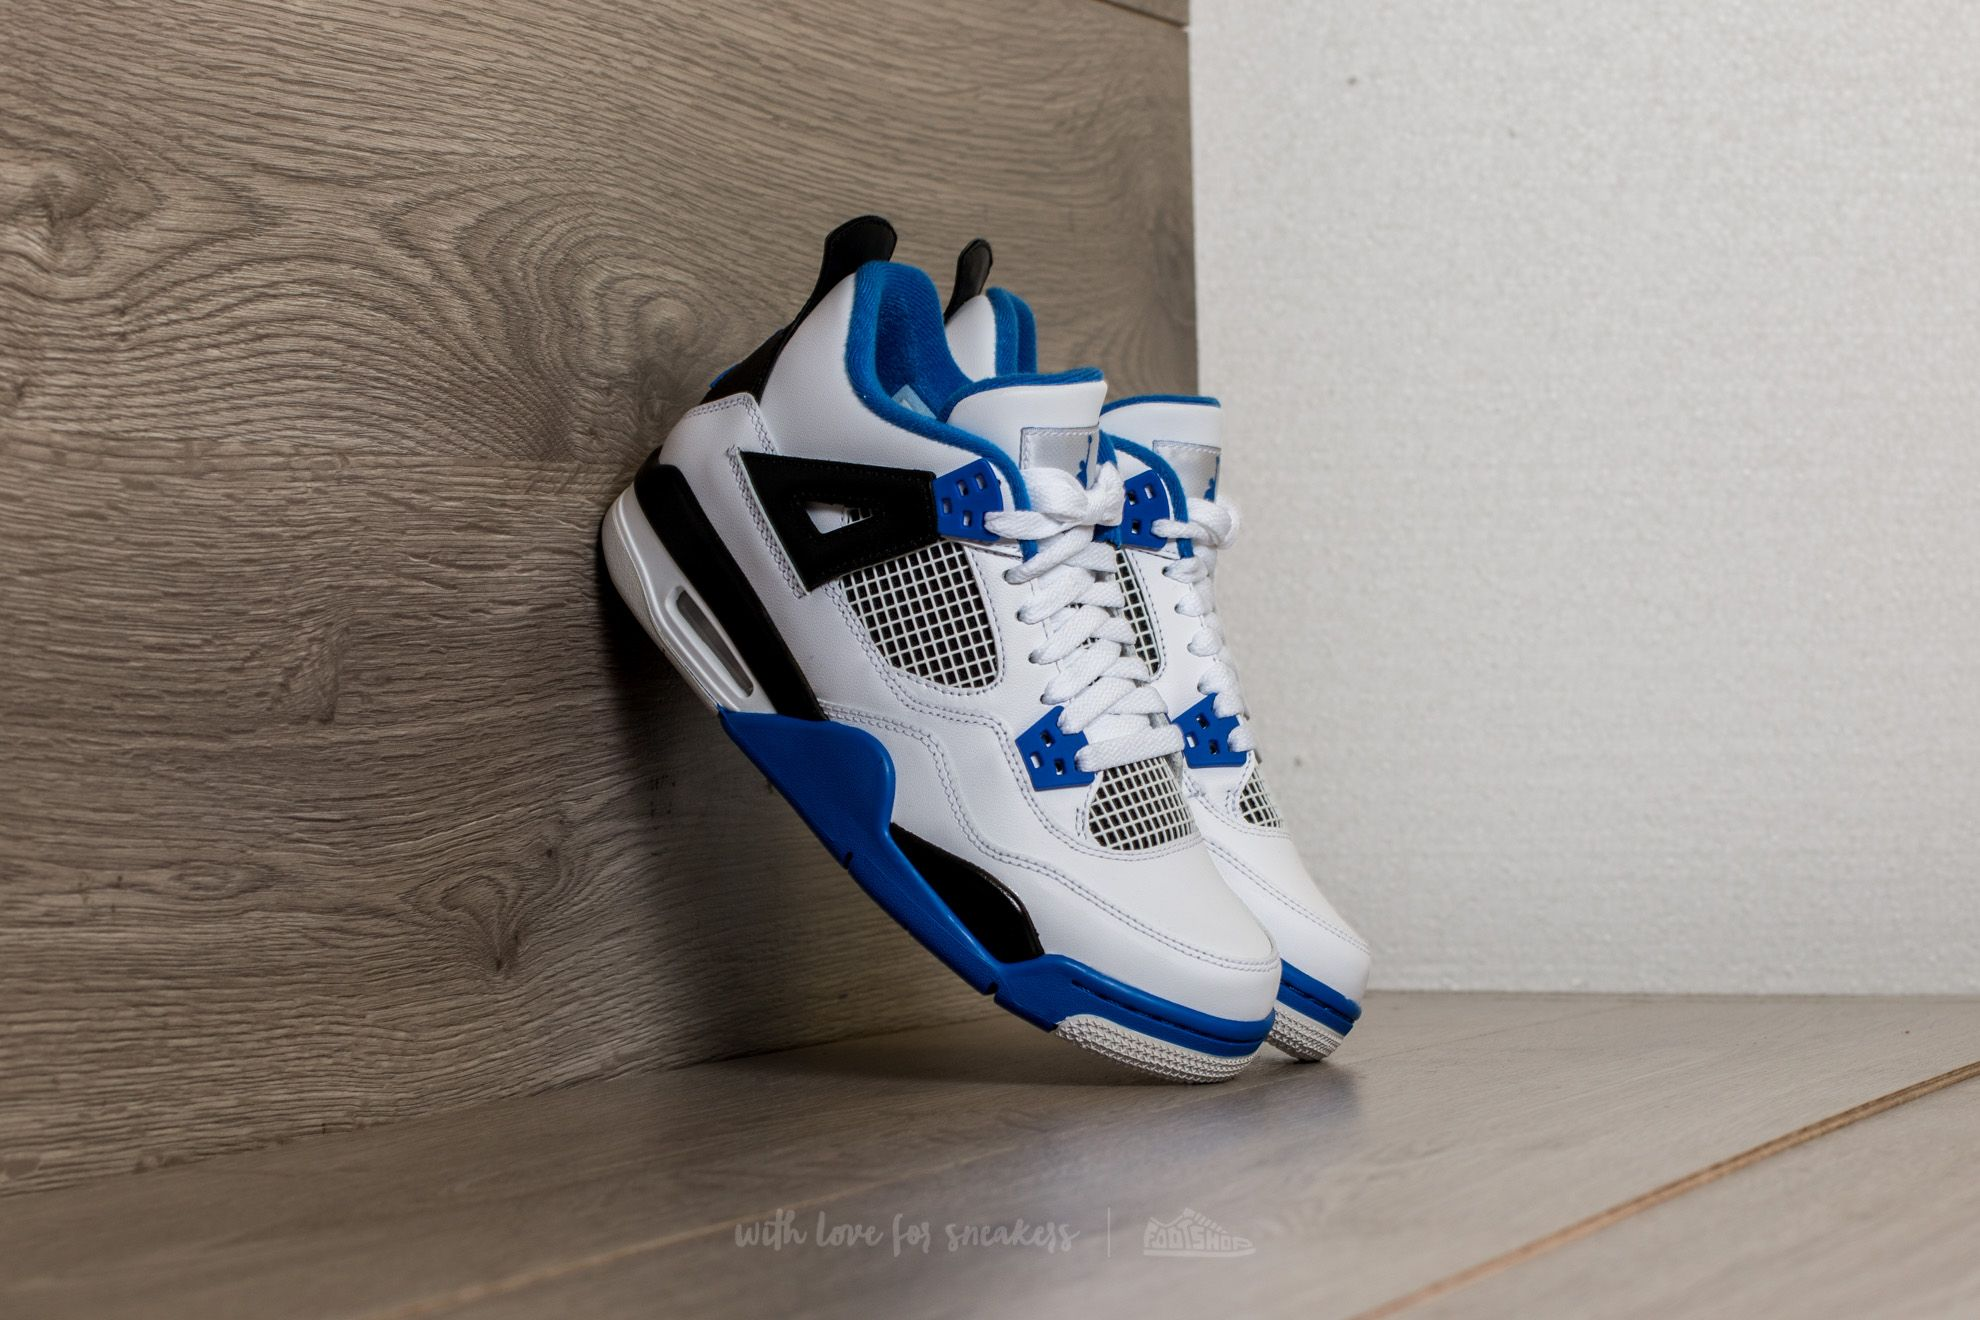 Air Jordan 4 Retro BG White/ Game Royal-Black - 15052